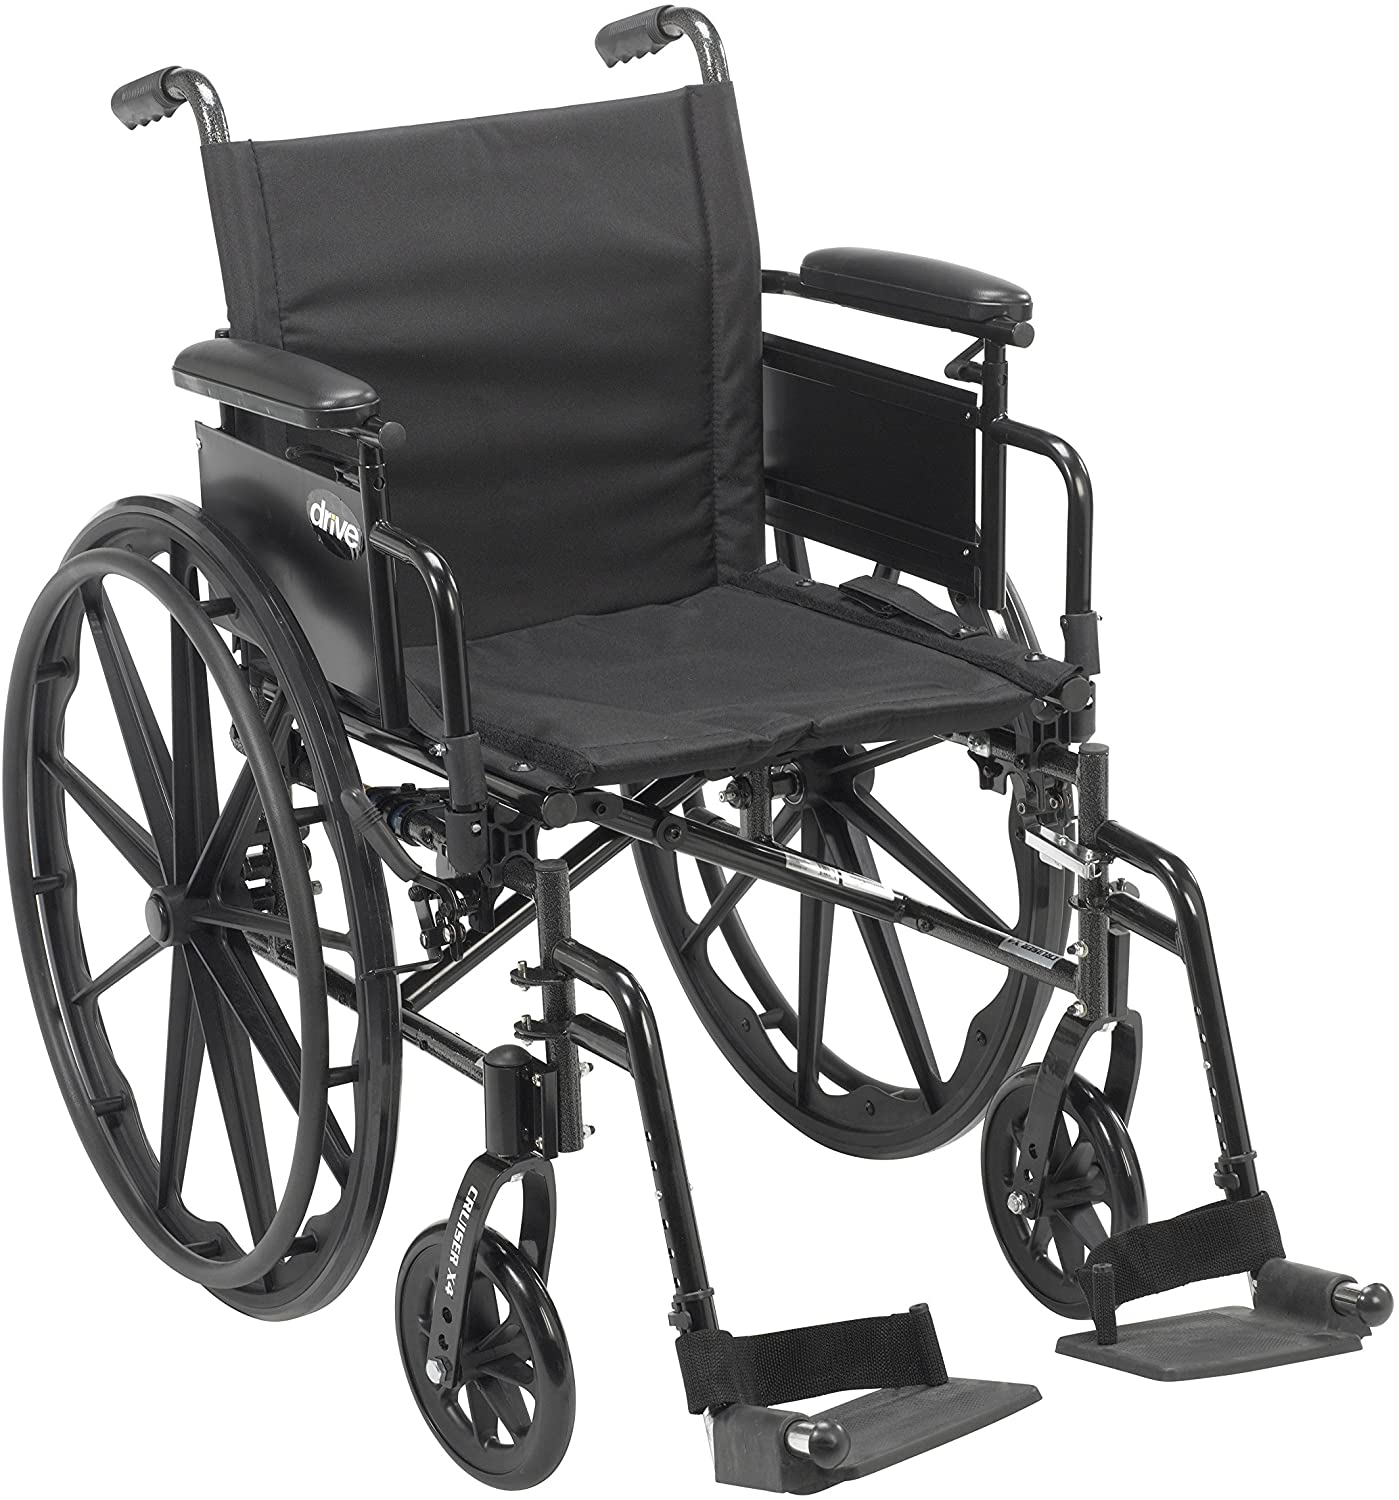 "Drive Medical Cruiser X4 Lightweight Dual Axle Wheelchair with Adjustable Detachable Arms, Desk Arms, Swing Away Footrests, 18"" Seat 91aUfLFGgWL"